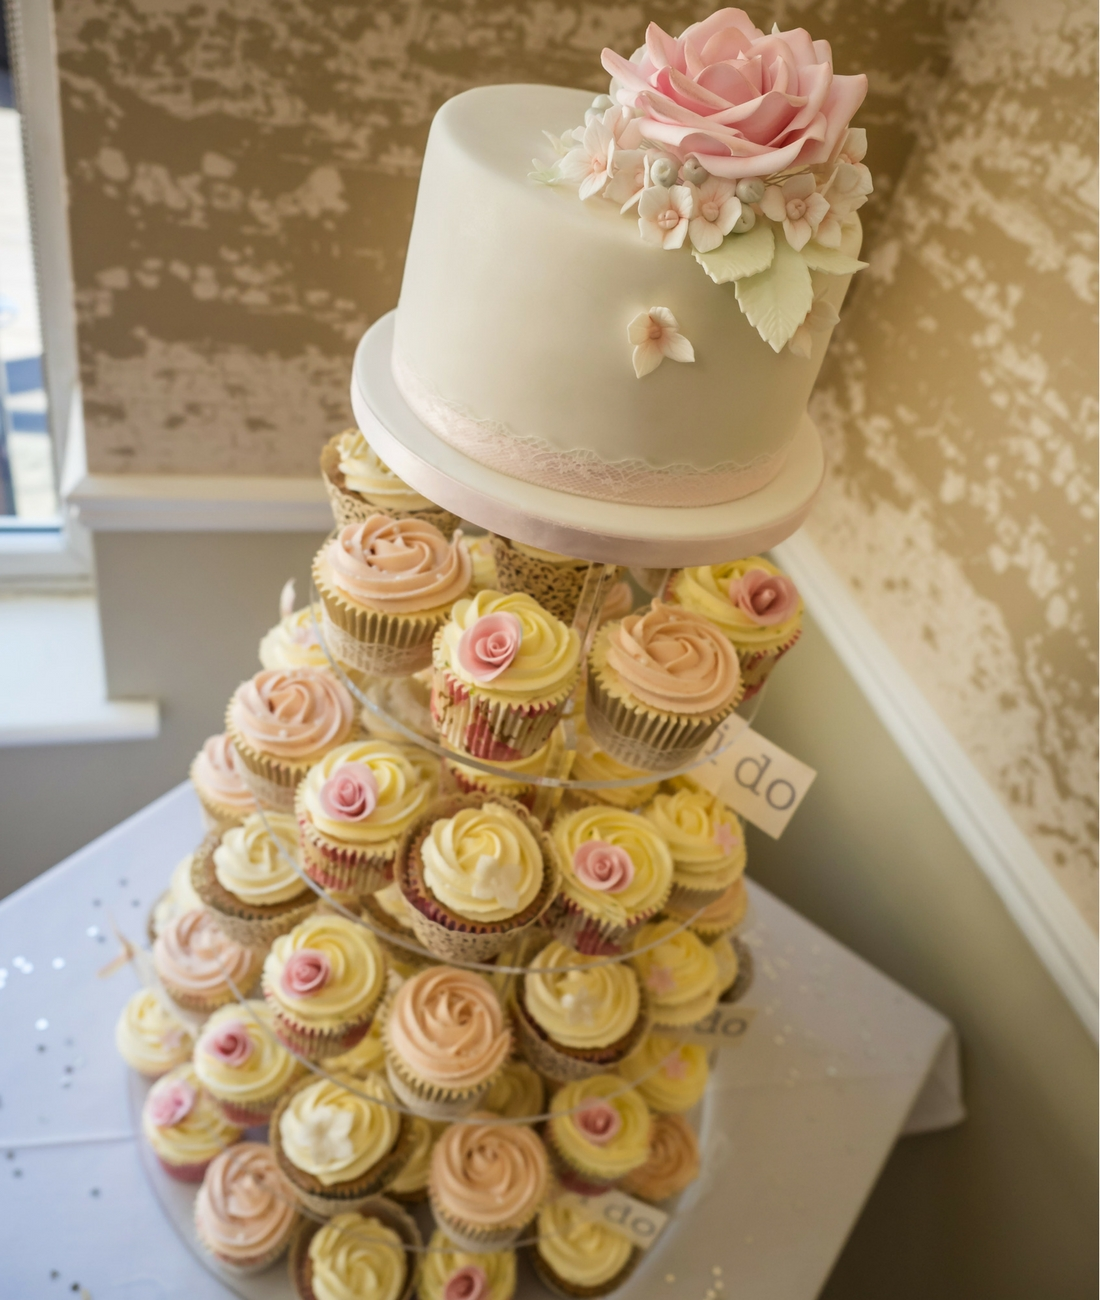 Love Artisan Wedding Cakes - Floral White Wedding Cake and Cupcakes